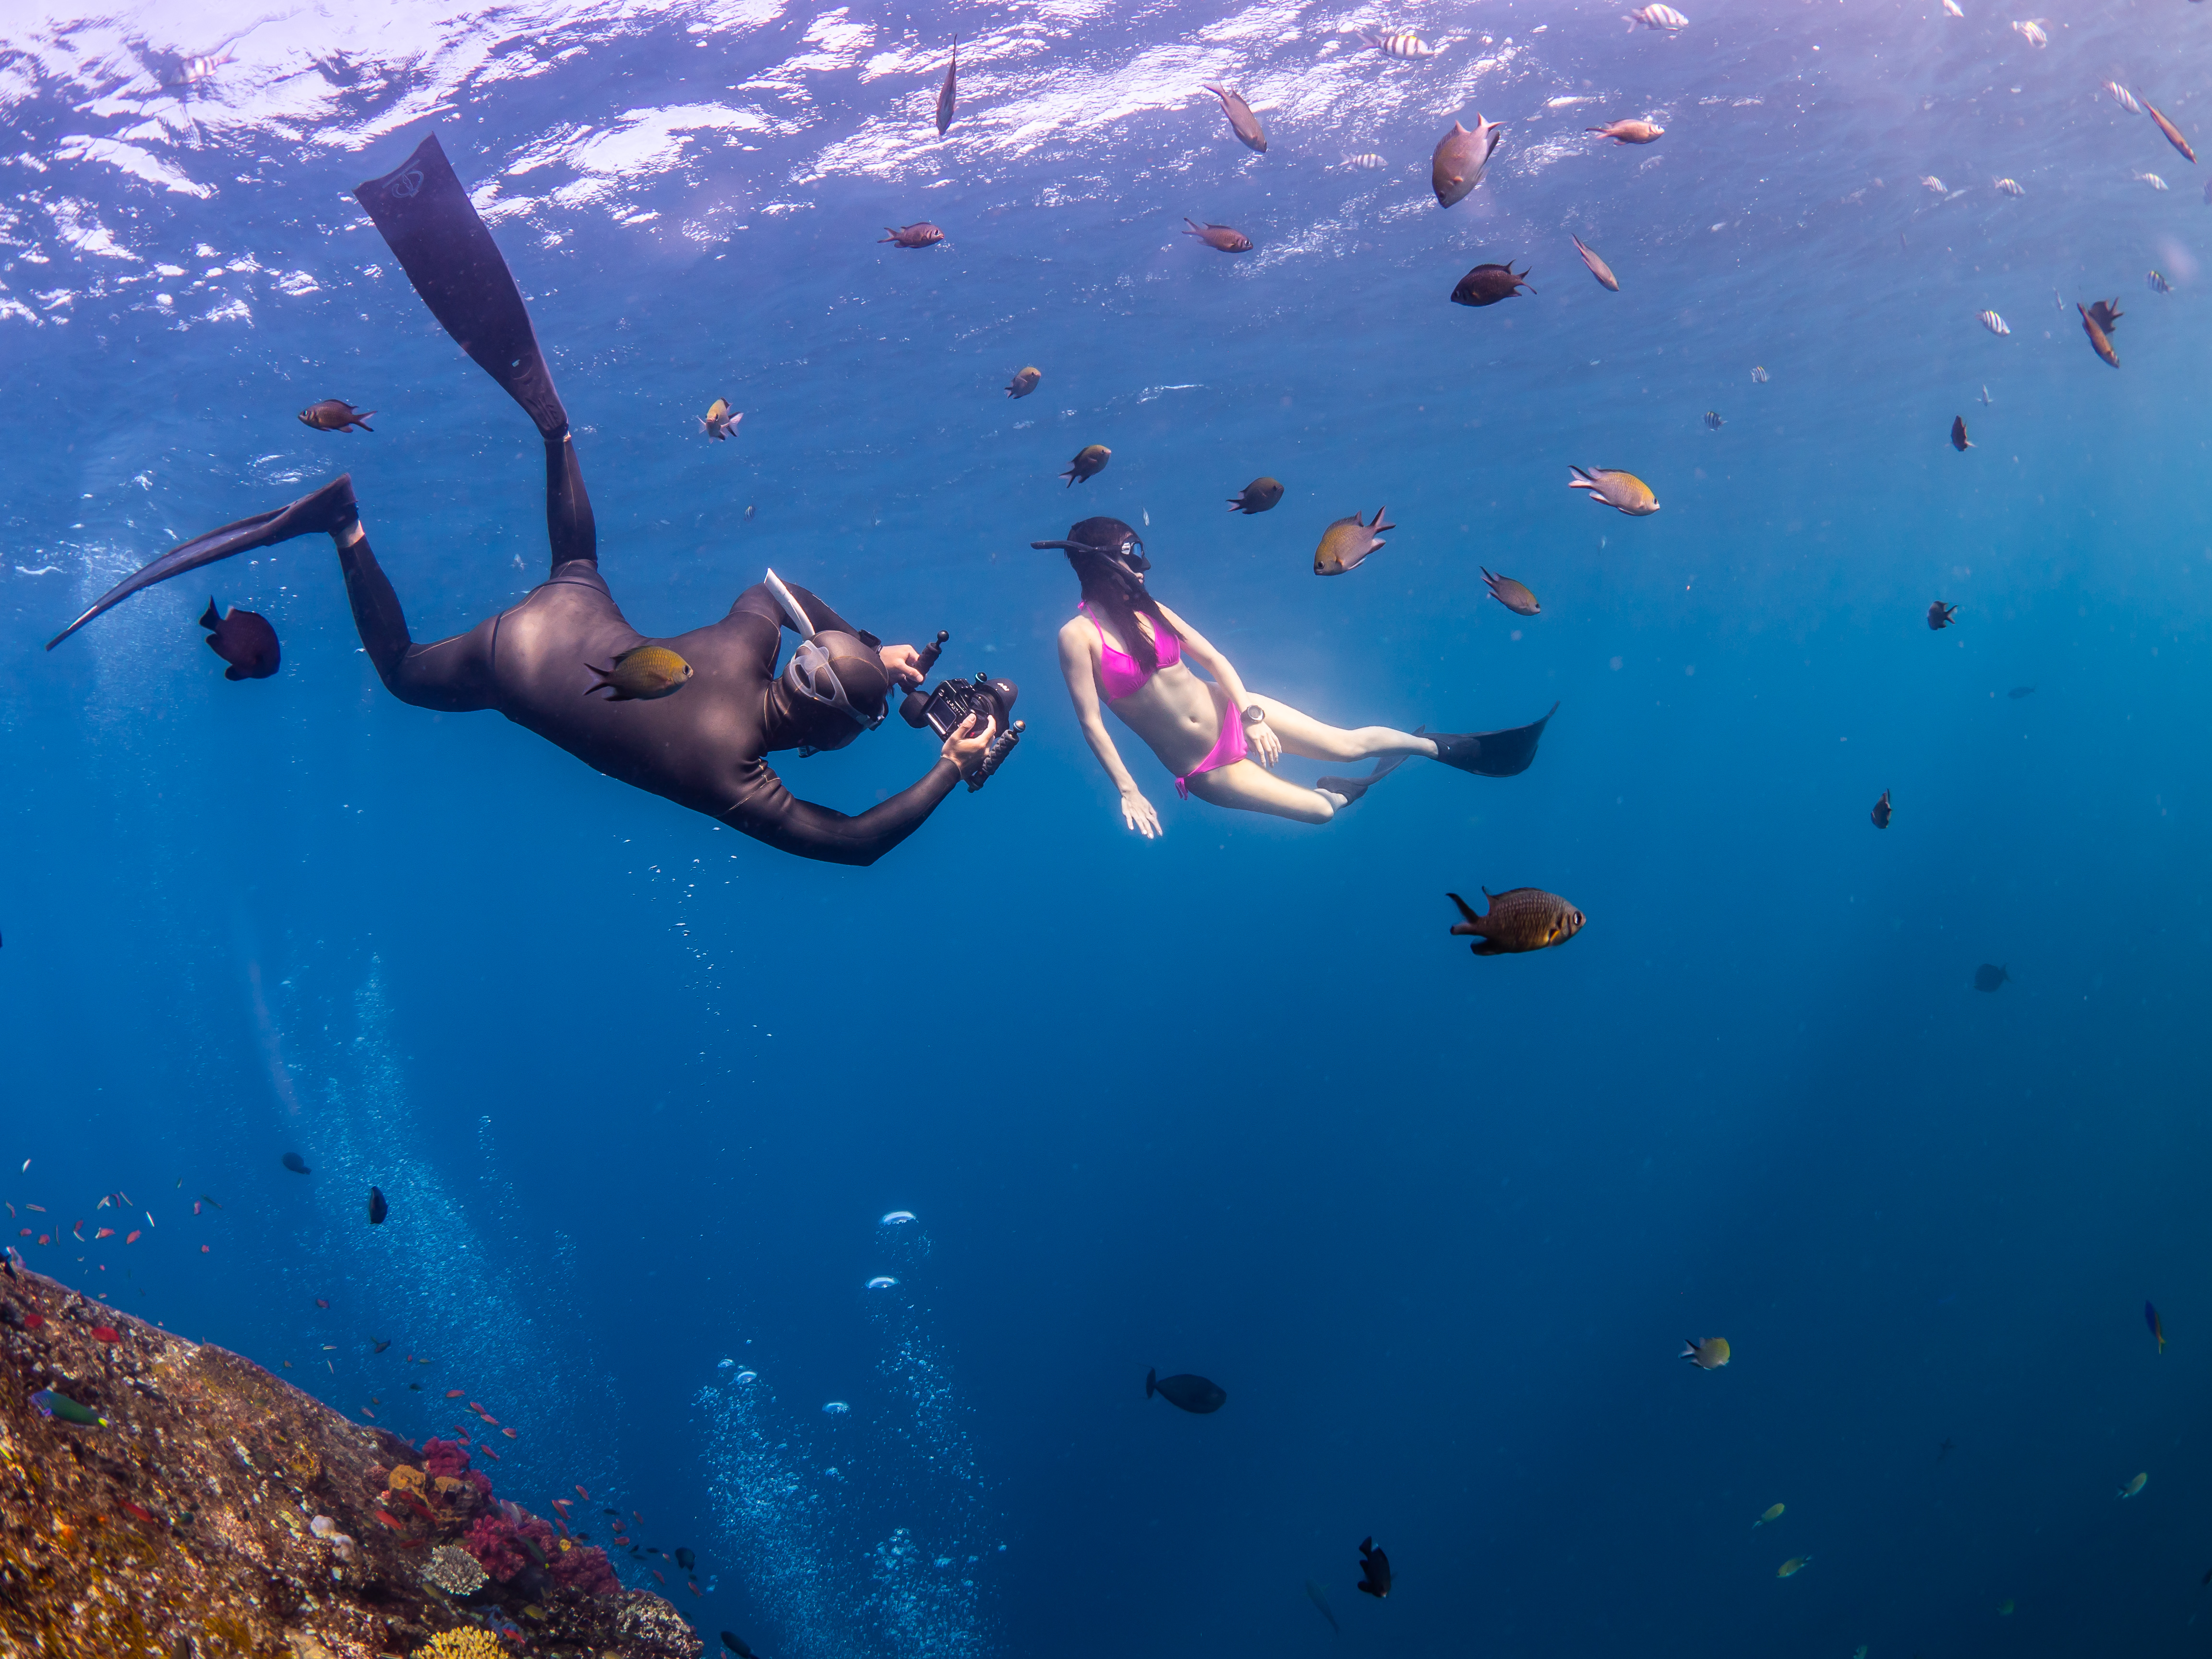 Freediving Photography. - Tips and Tricks for using natural light. Photo by Sam Henry